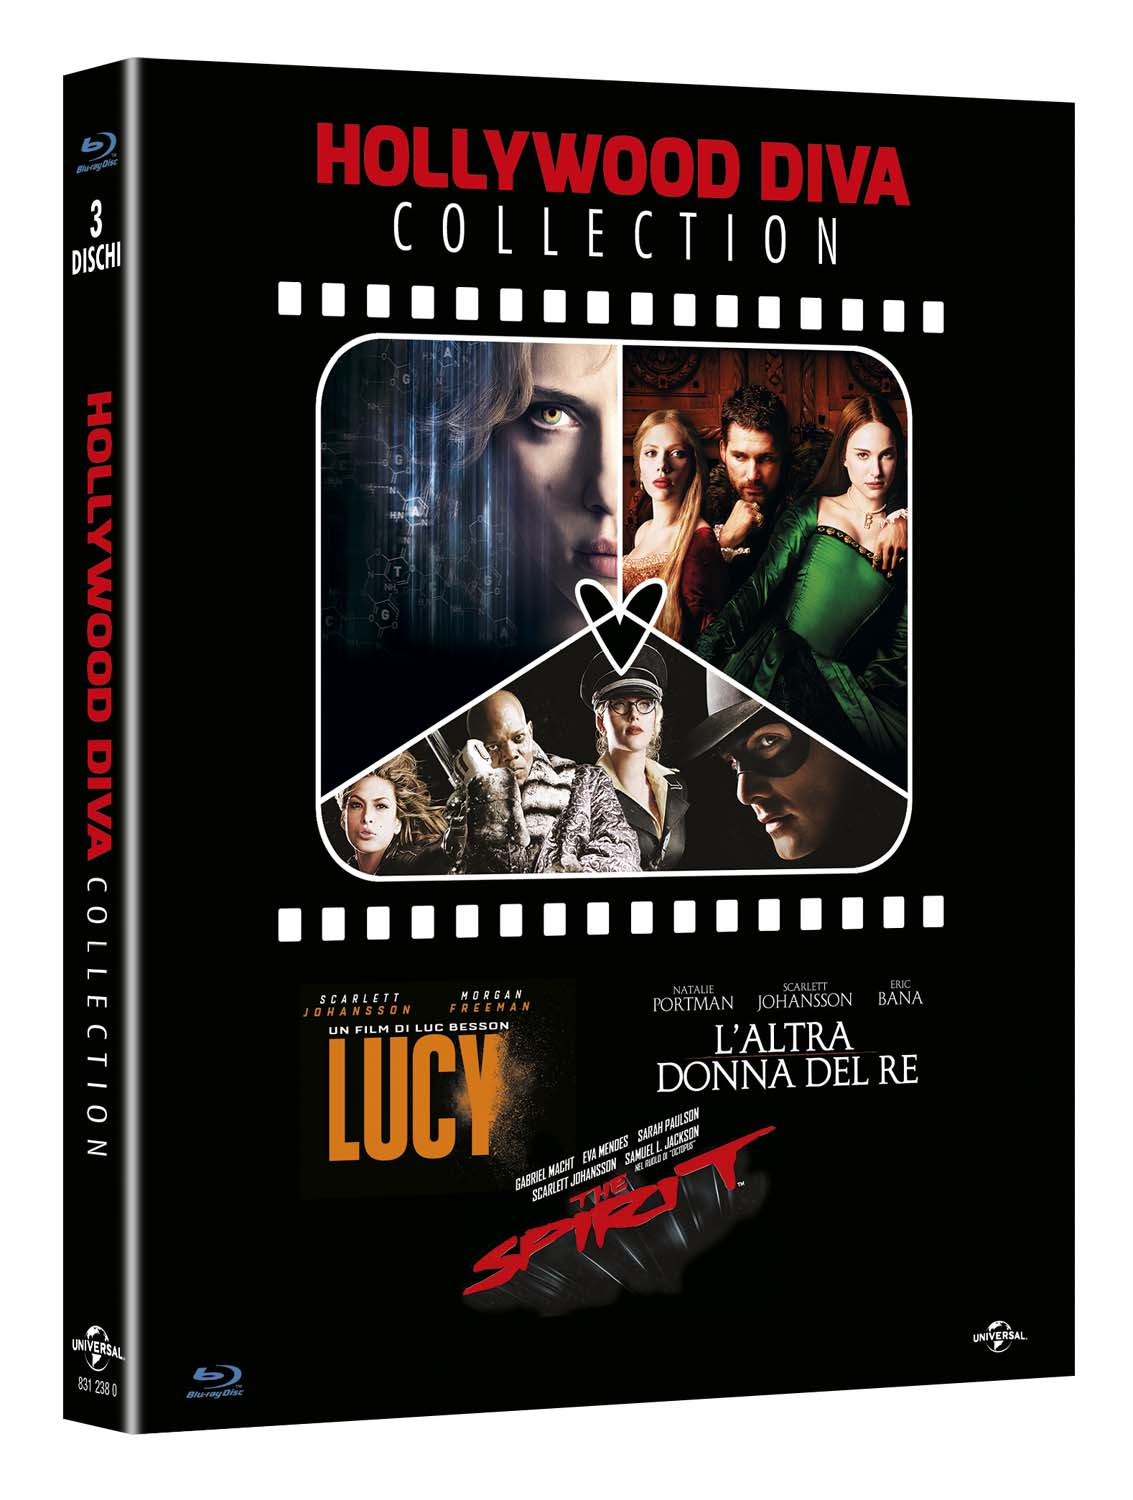 COF.HOLLYWOOD DIVA COLLECTION (3 BLU-RAY) LUCY-L'ALTRA DONNA DEL